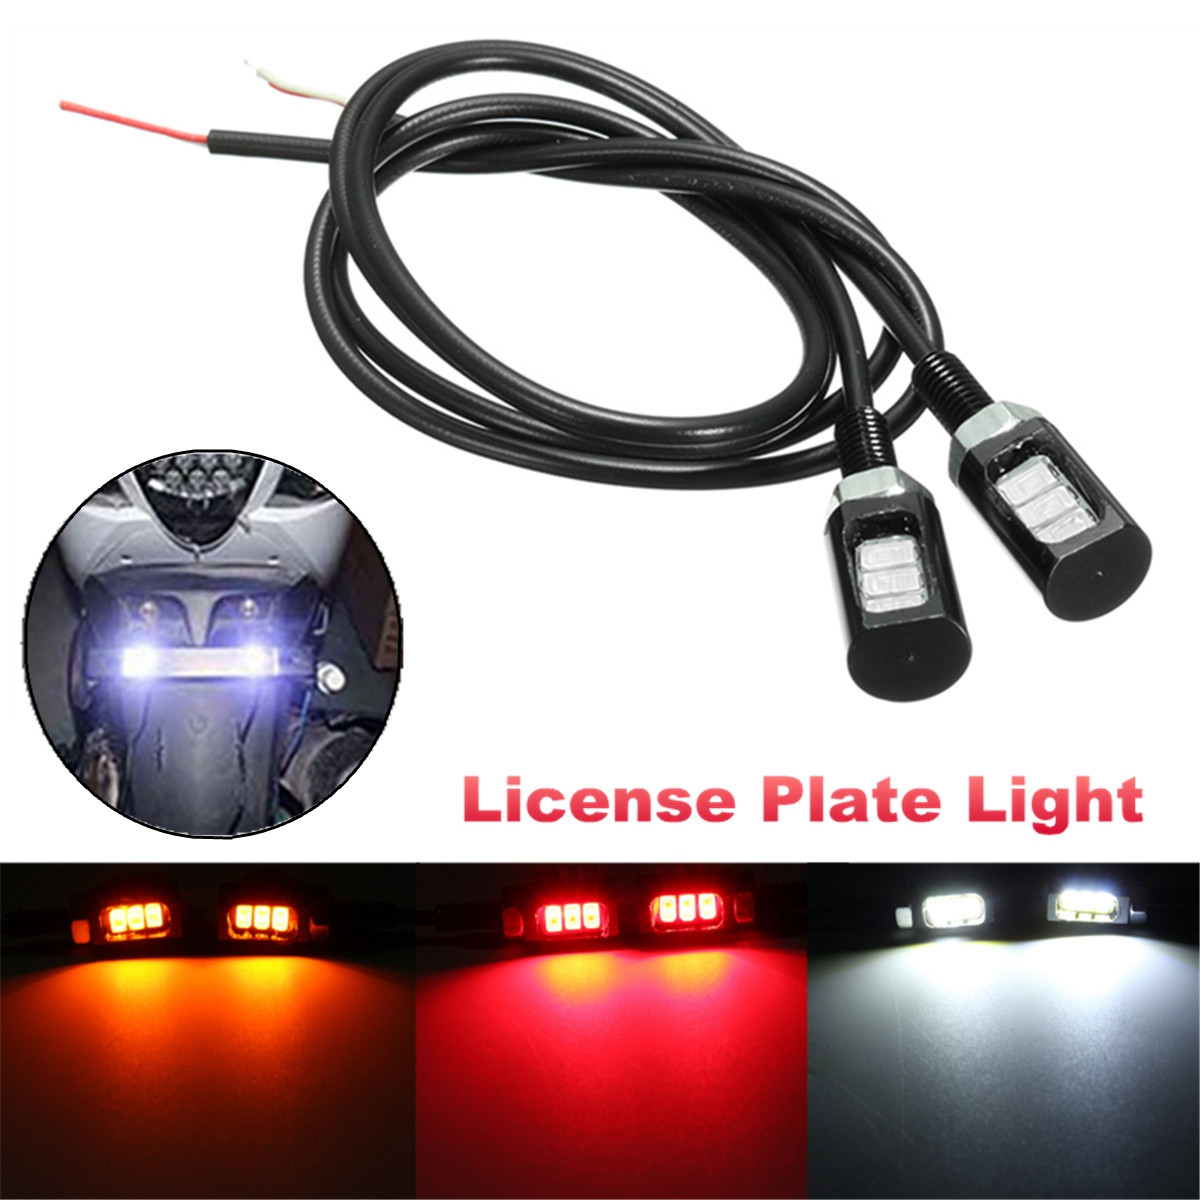 12V 3SMD 5630 LED Motorcycle Car License Plate Screw Bolt Light Lamp